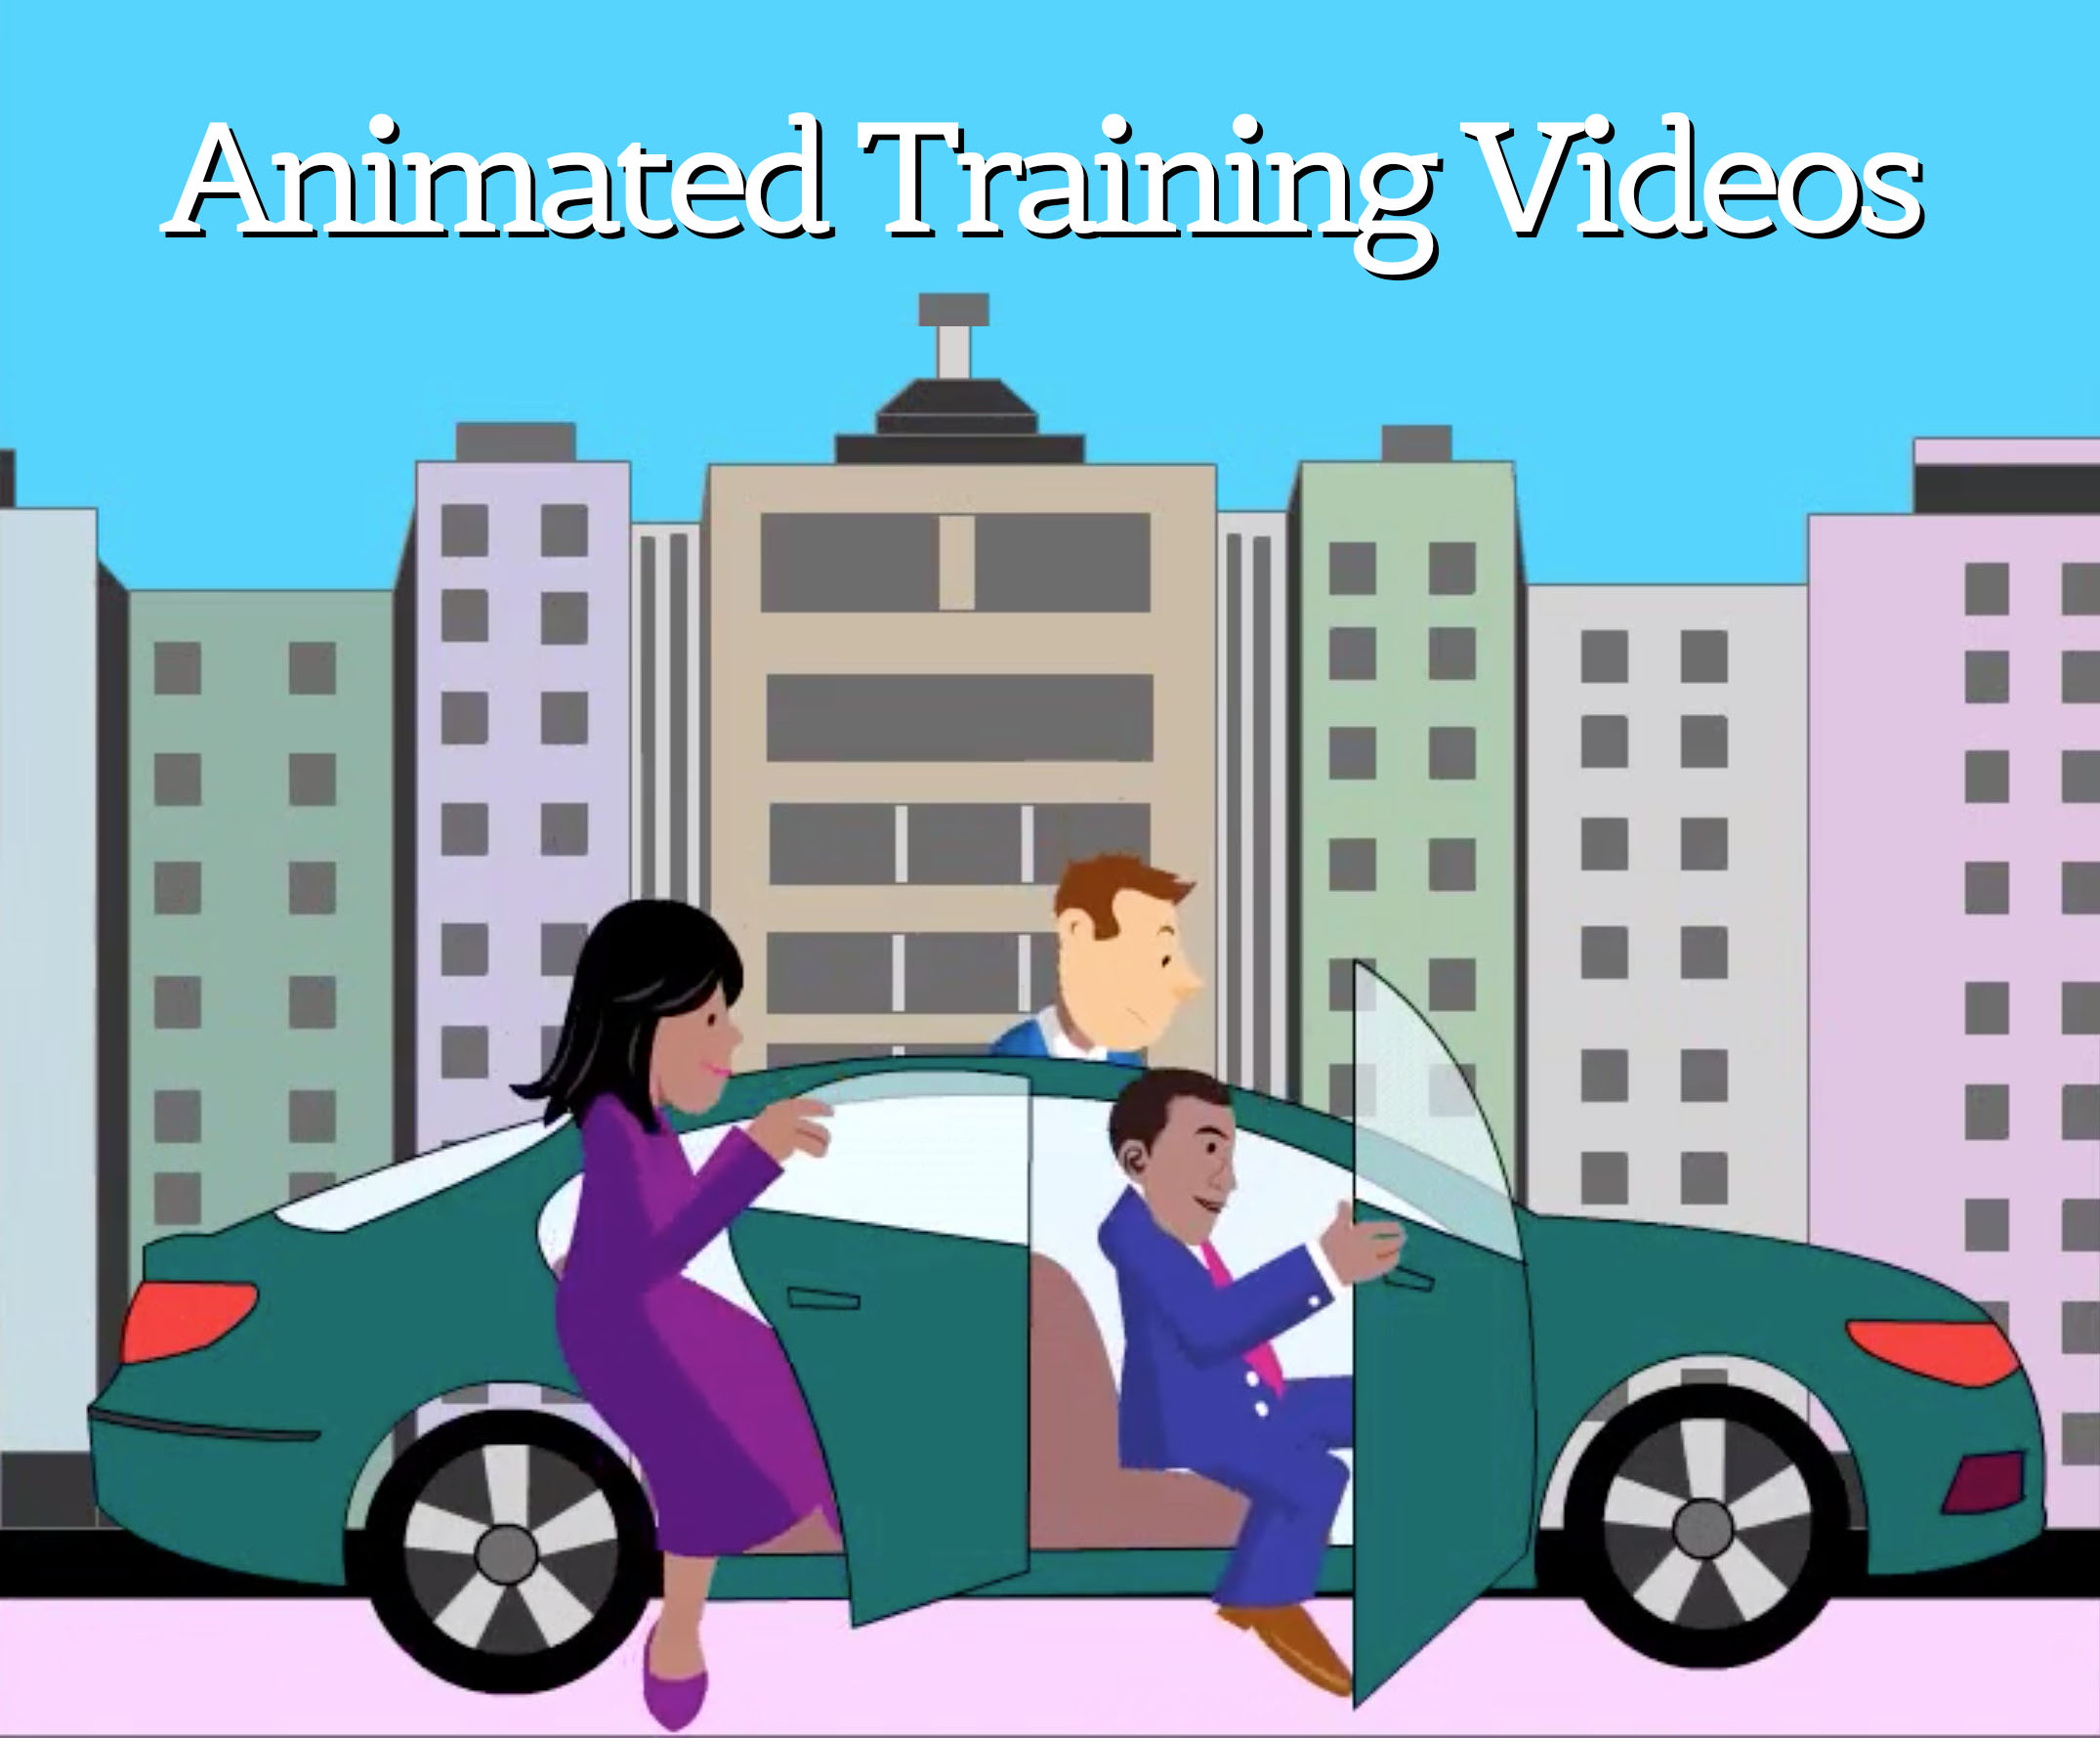 animated-training-videos-servicemasters-02